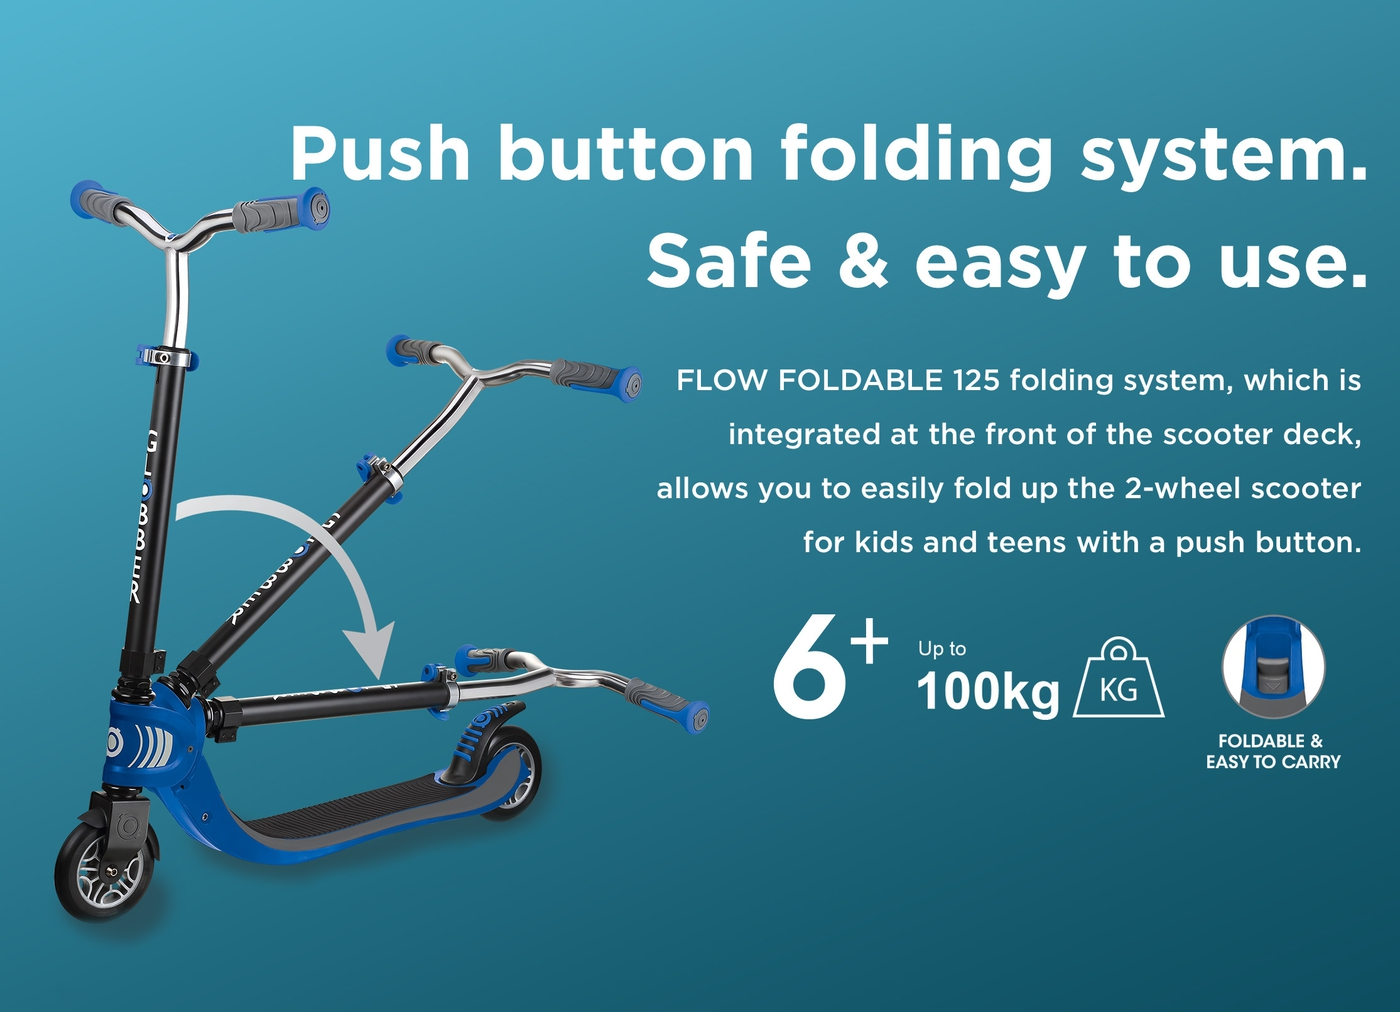 Push button folding system. Safe and easy to use.